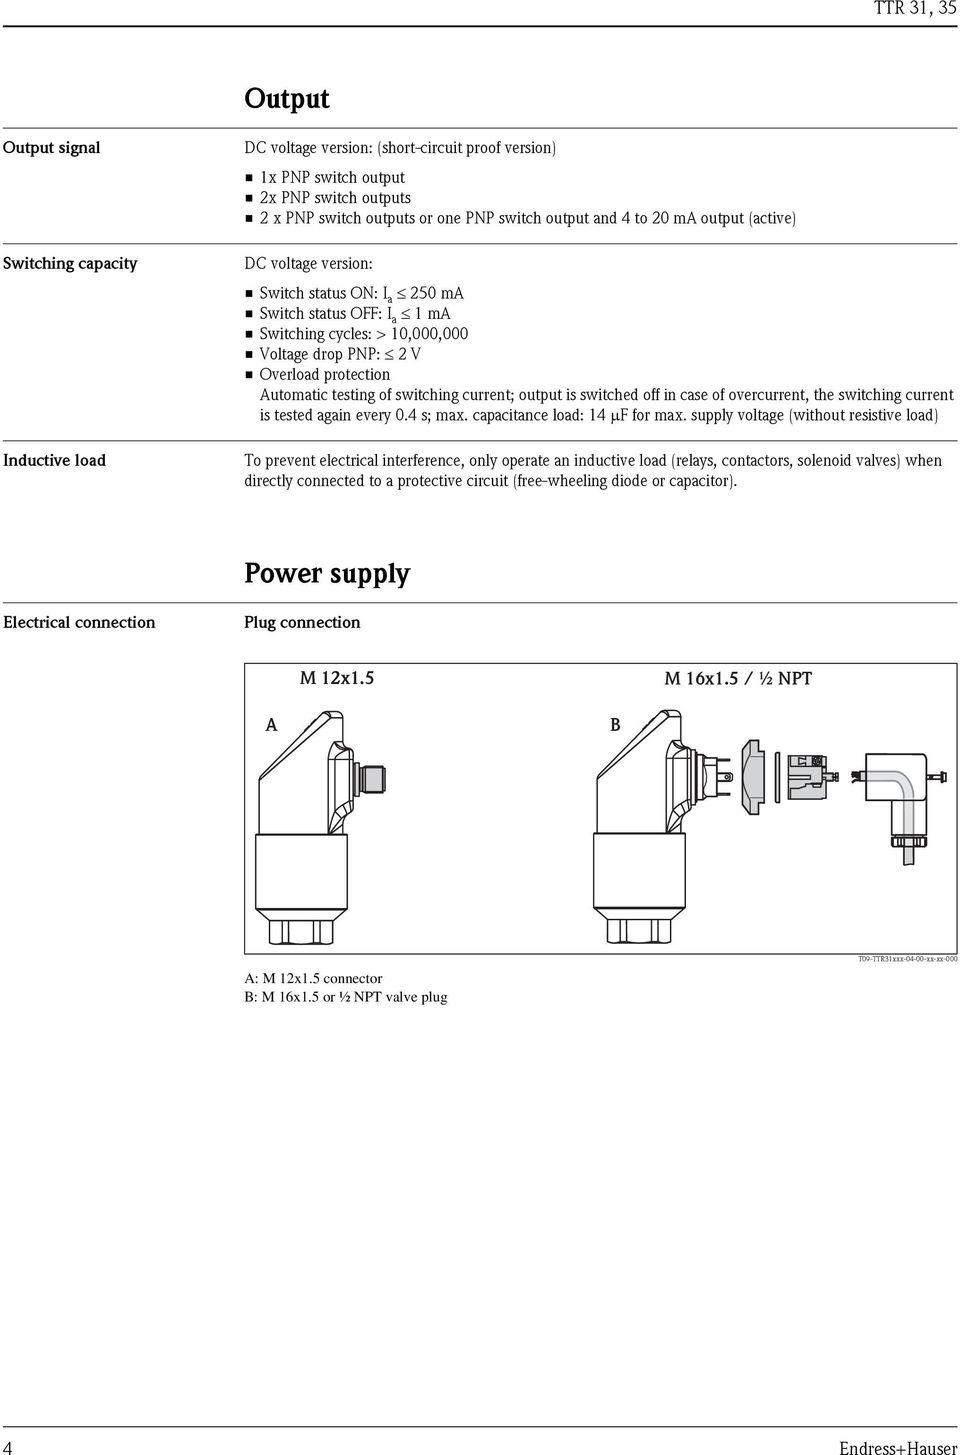 Temperature Switch Thermophant T Ttr 31 35 Pdf Dc Wiring Diagram 4 Prug Switching Current Output Is Switched Off In Case Of Overcurrent The 5 Device Connection